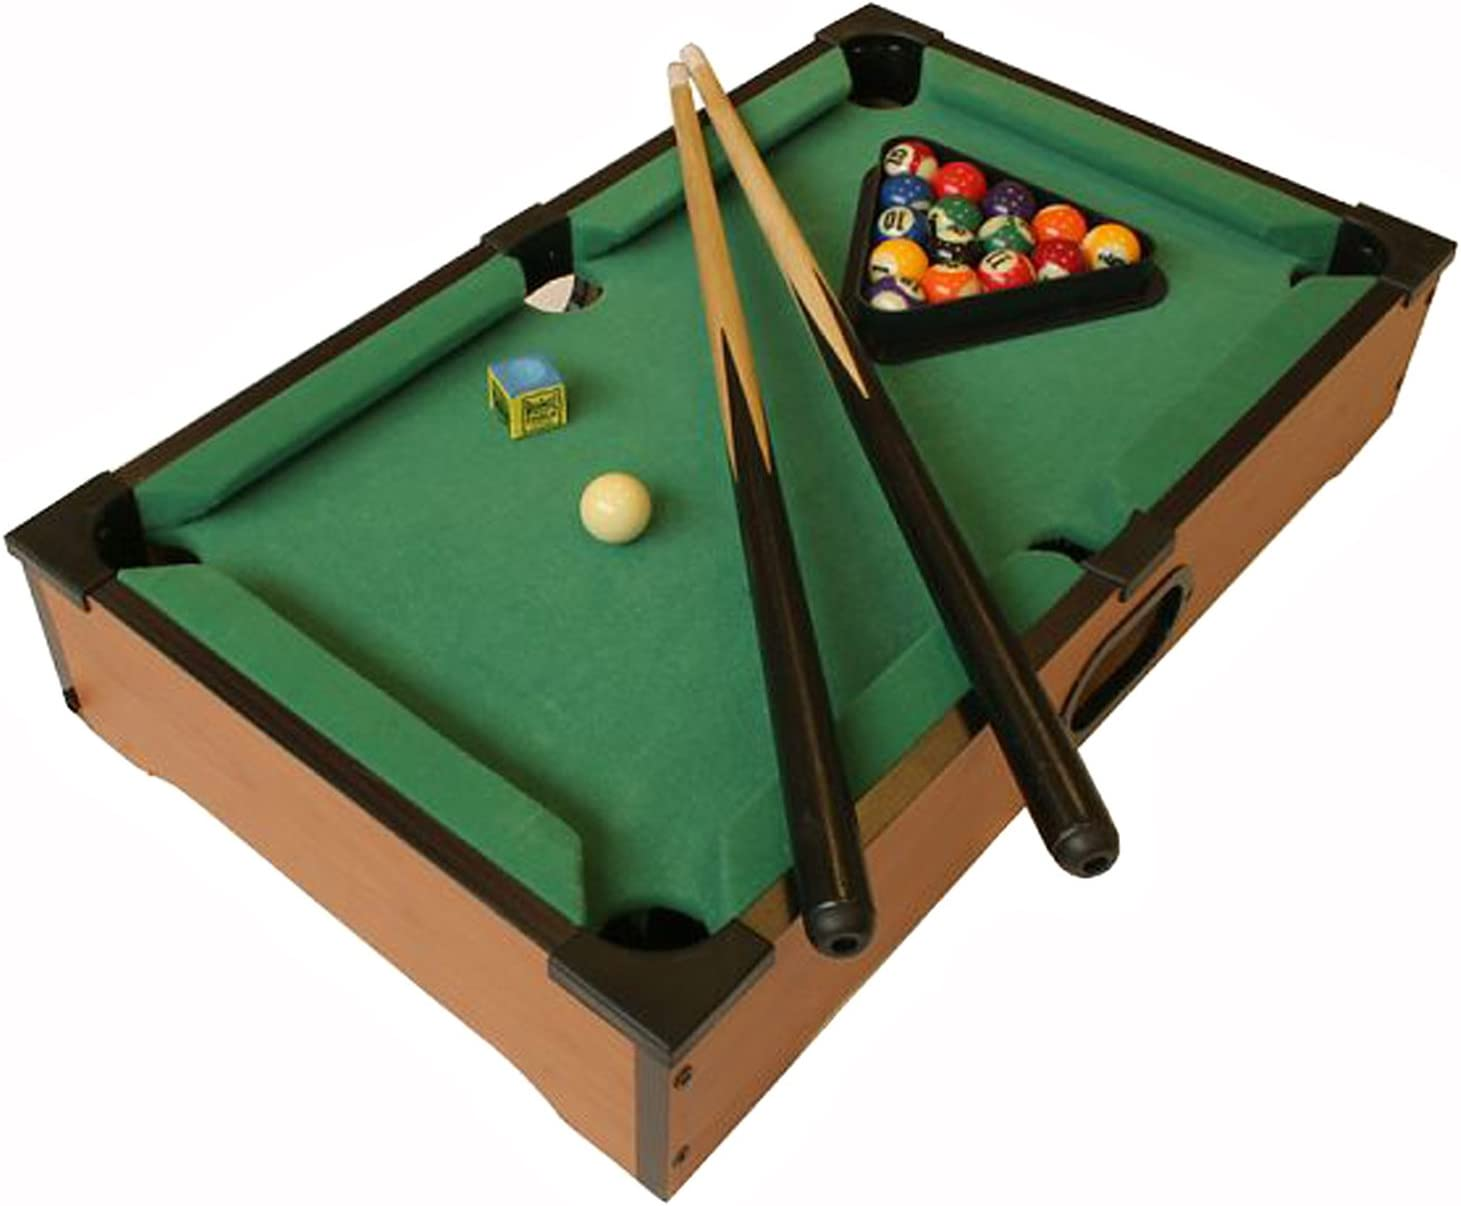 Mini Billar Juegos mesa billar 51 x 31 x 9,5 cm: Amazon.es ...